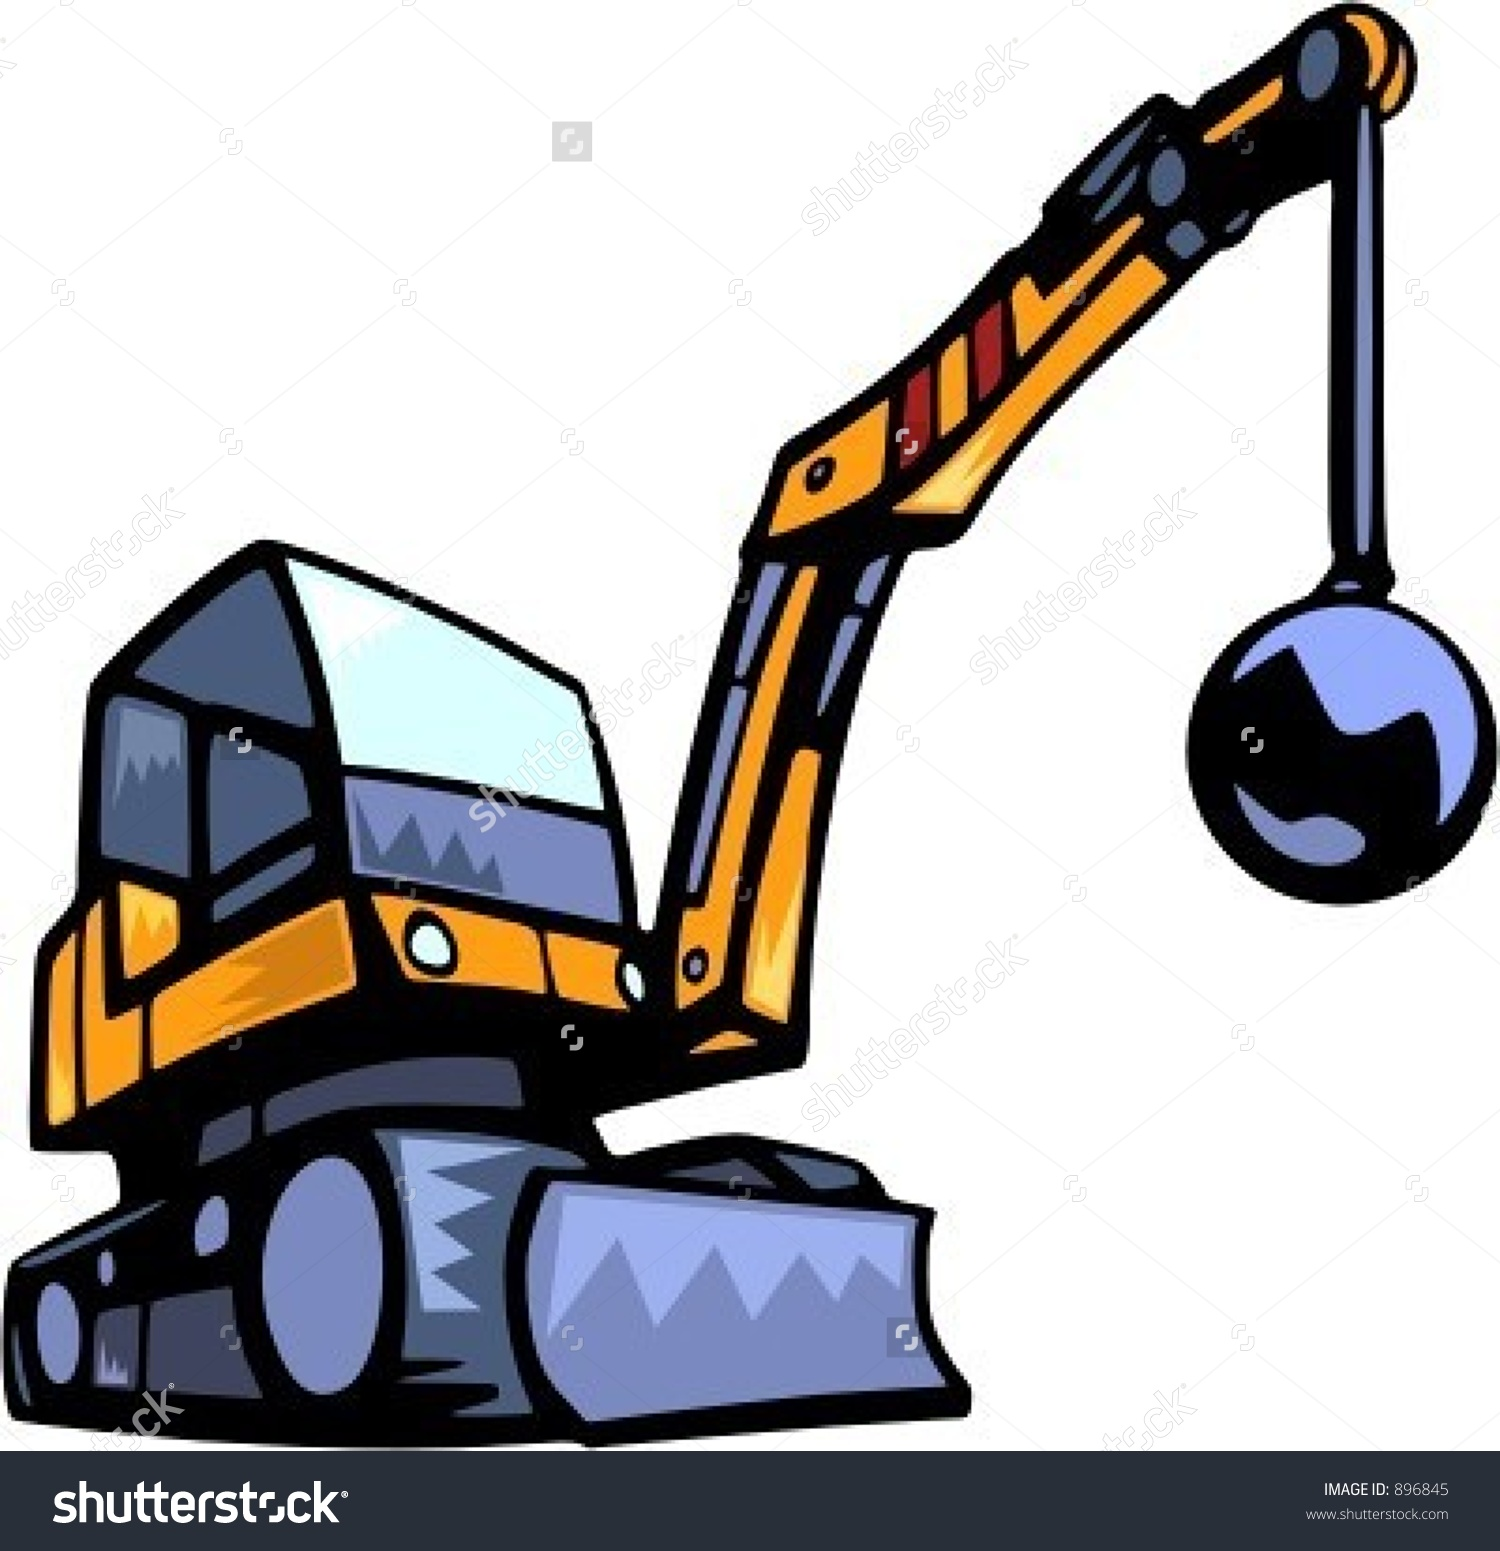 Demolition Vehiclevector Illustration Stock Vector 896845.